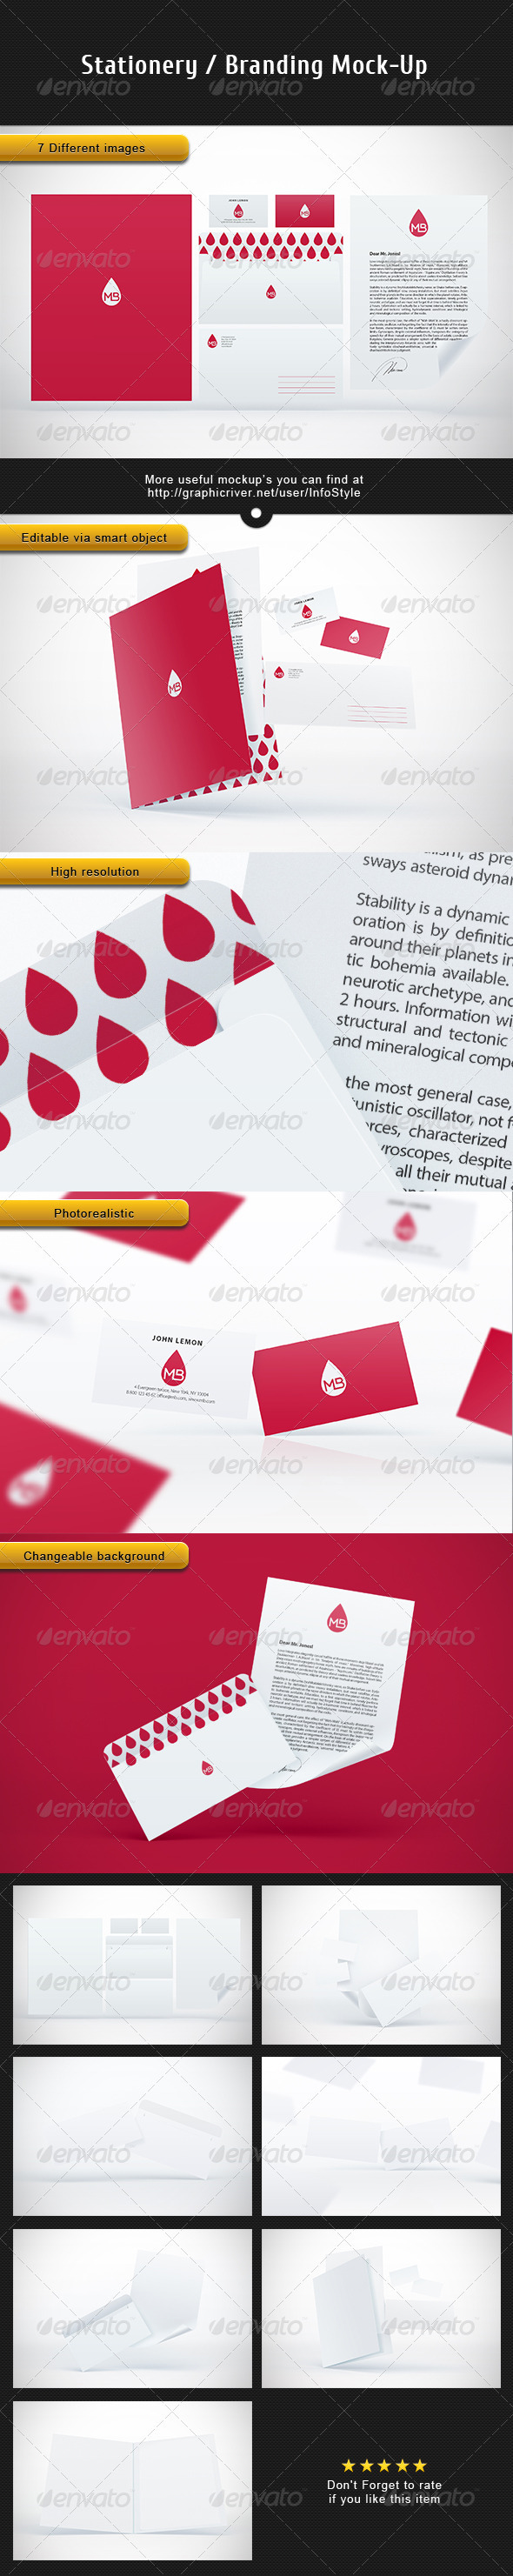 Stationery Branding Mock-Up Vol.2